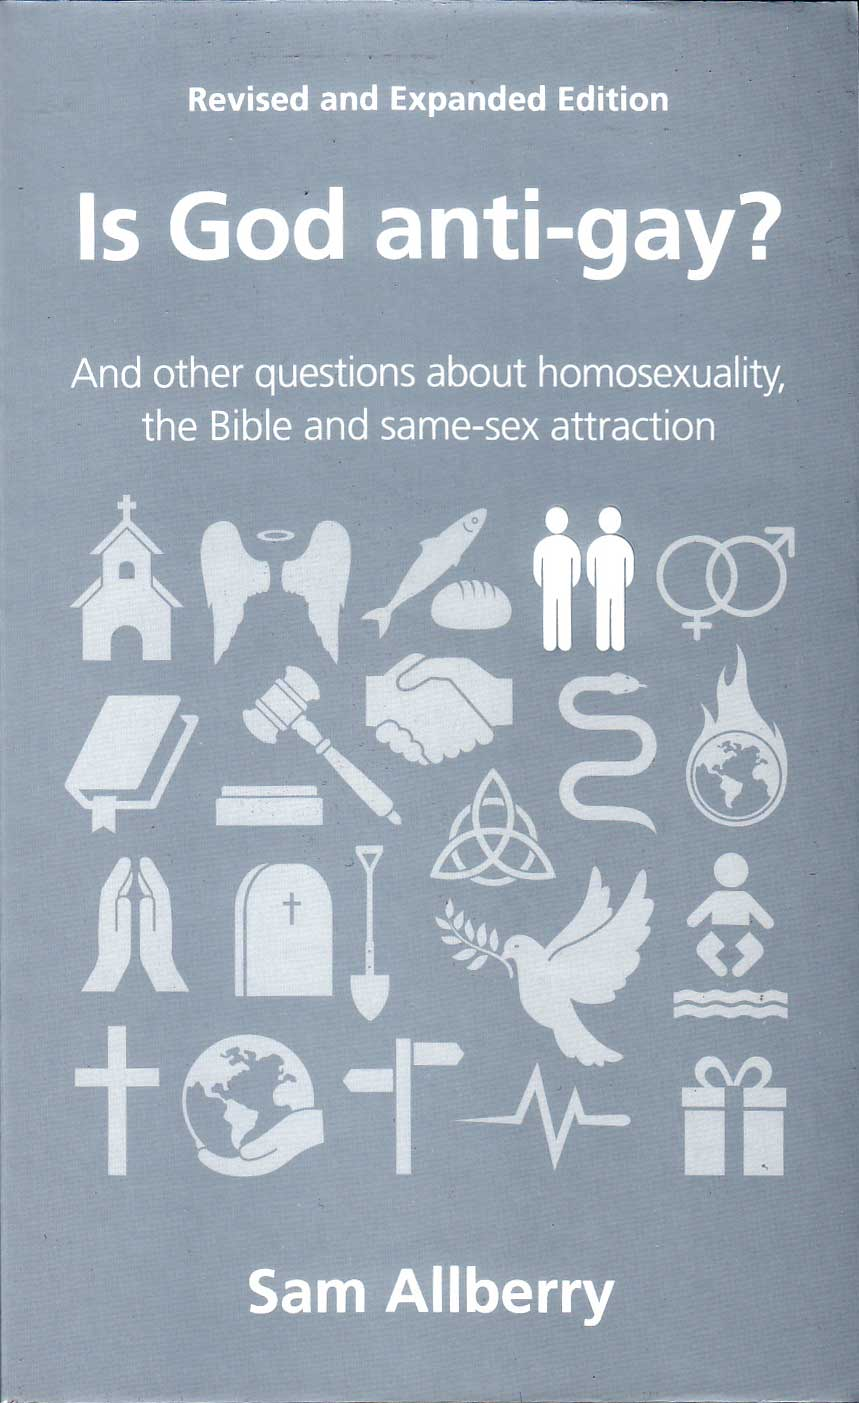 Is God anti-gay? : and other questions about homosexuality, the Bible and same-sex attraction / by Sam Allberry.